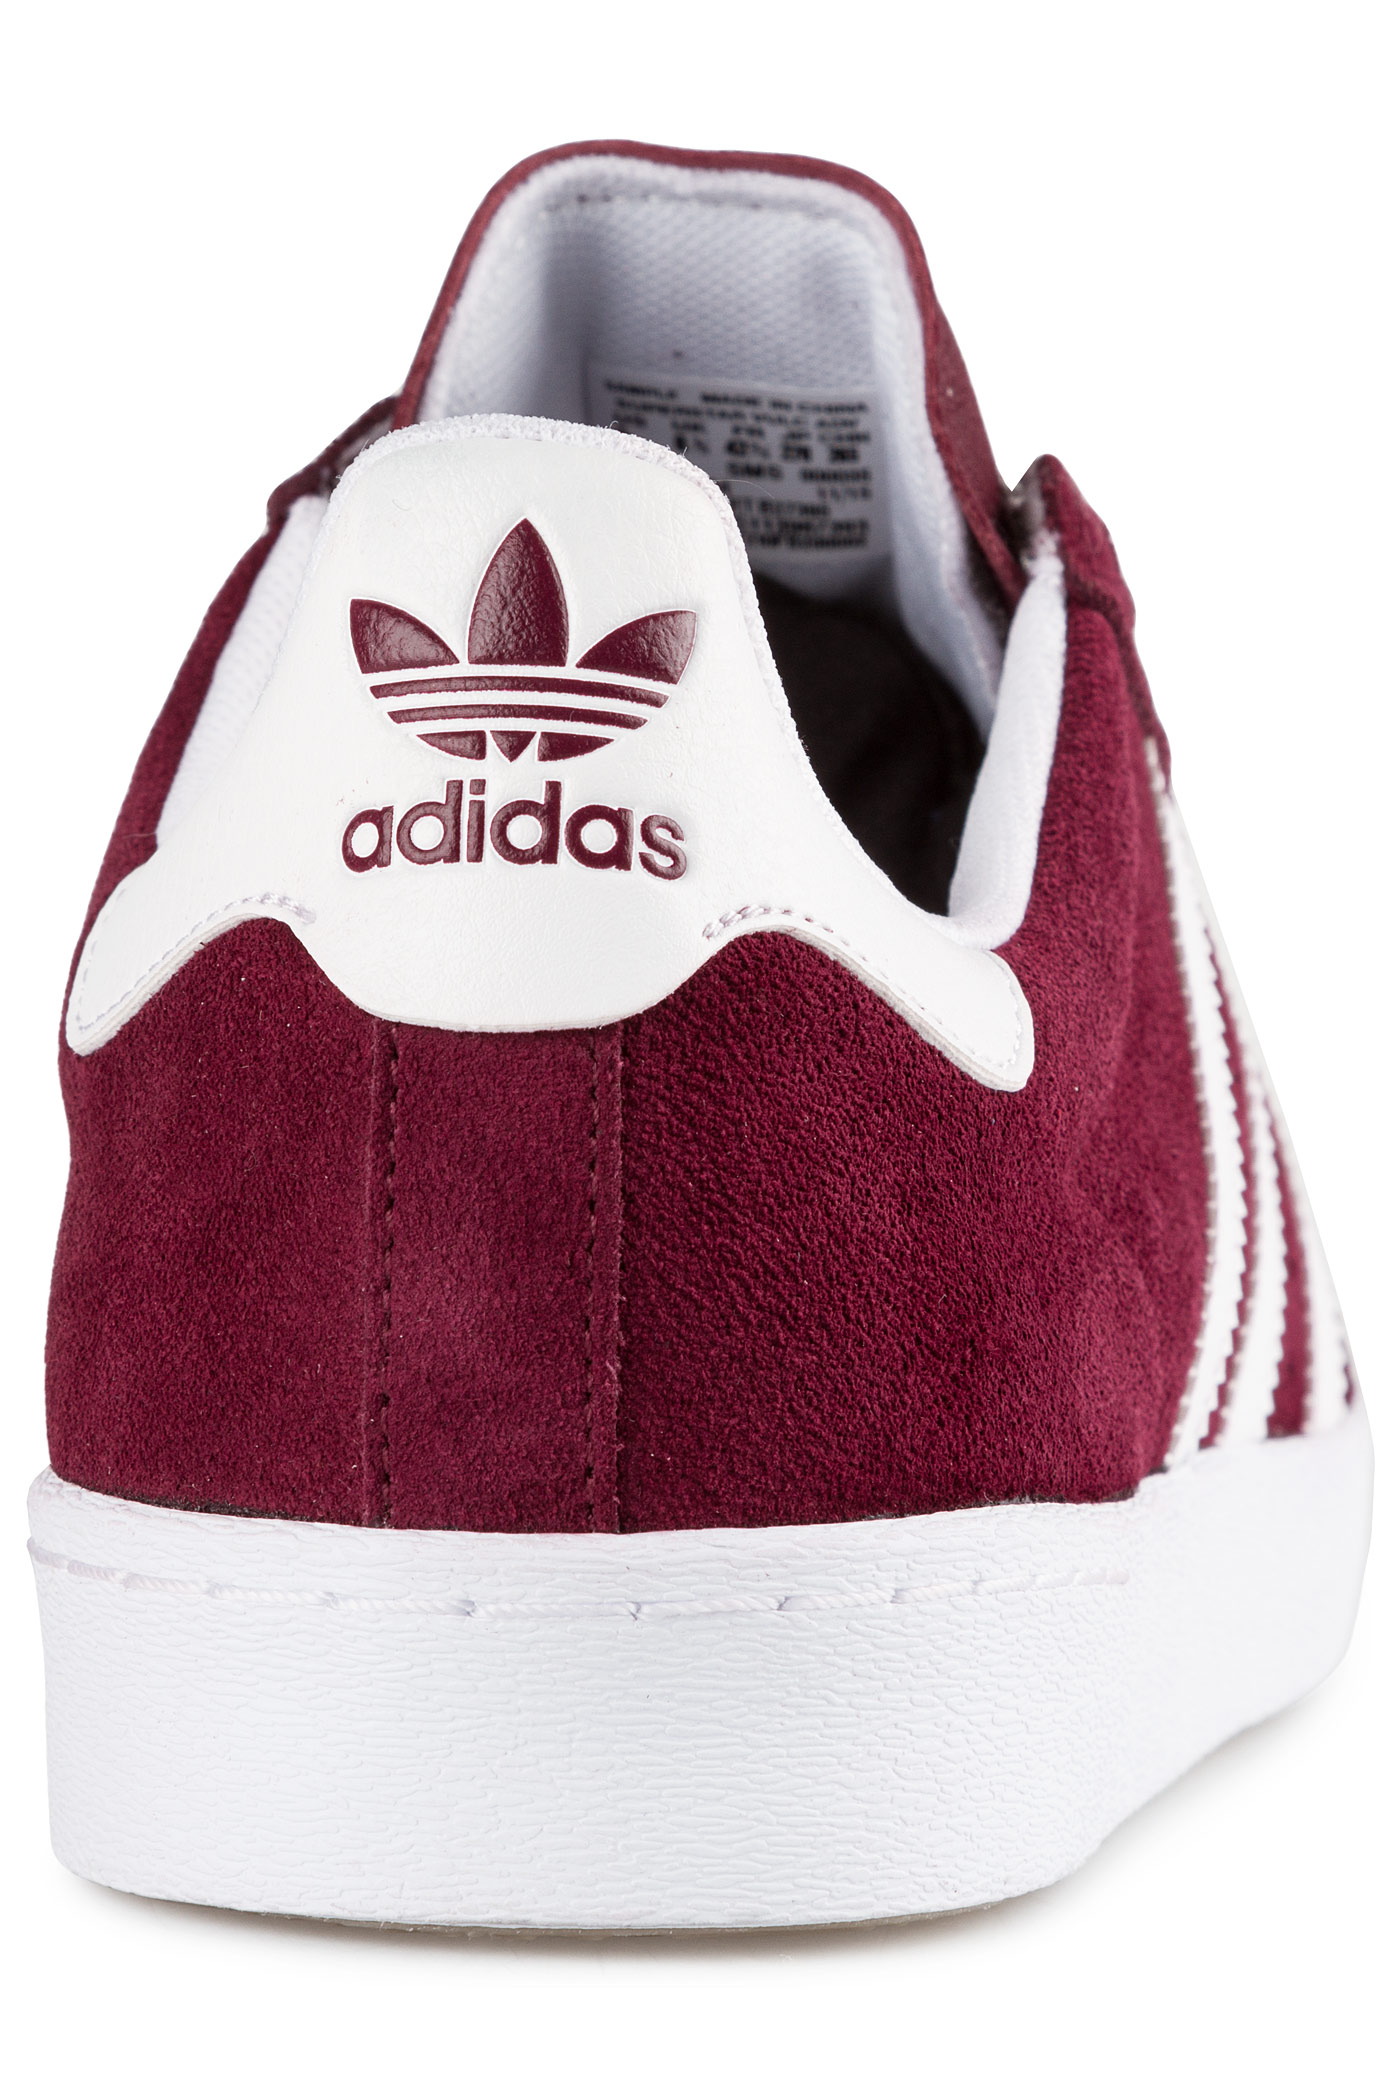 Cheap Adidas SKATE BOARDING SUPERSTAR VULC ADV maroon white